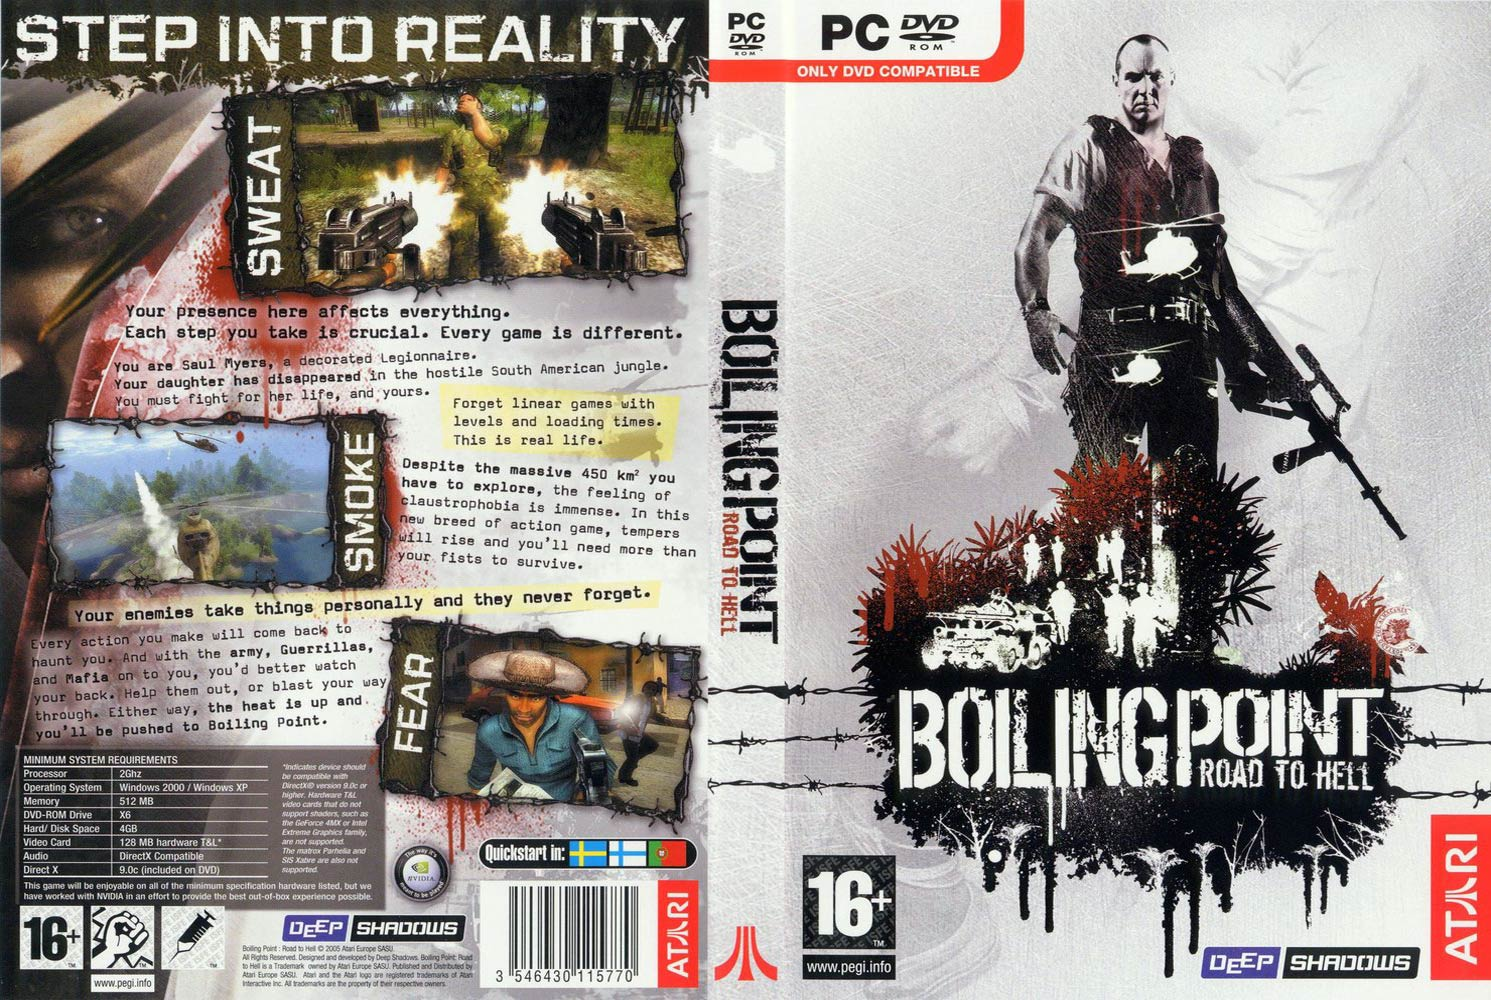 Boiling Point: Road to Hell - DVD obal